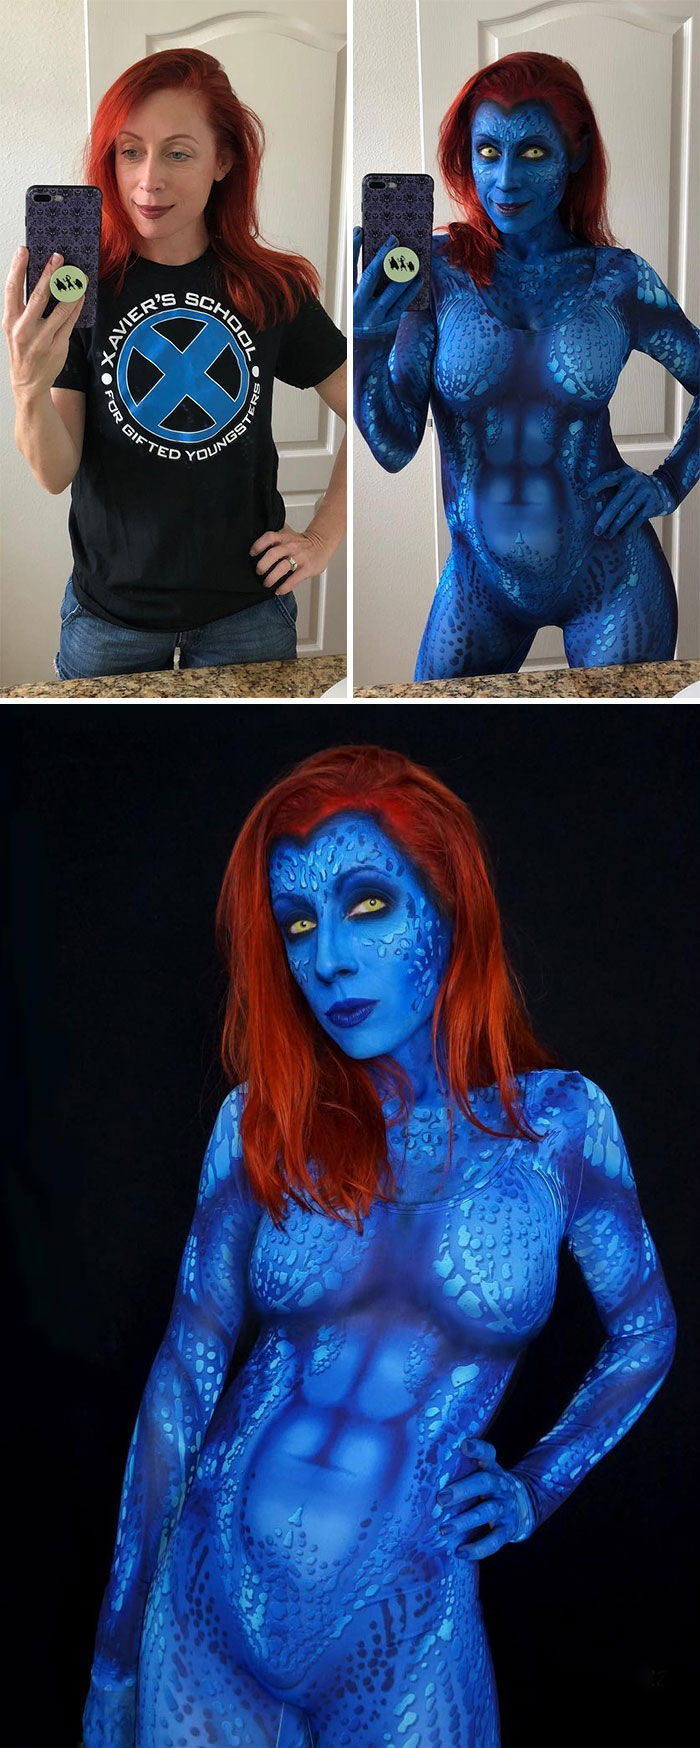 brenna mazzoni epic cosplay transformations mystique